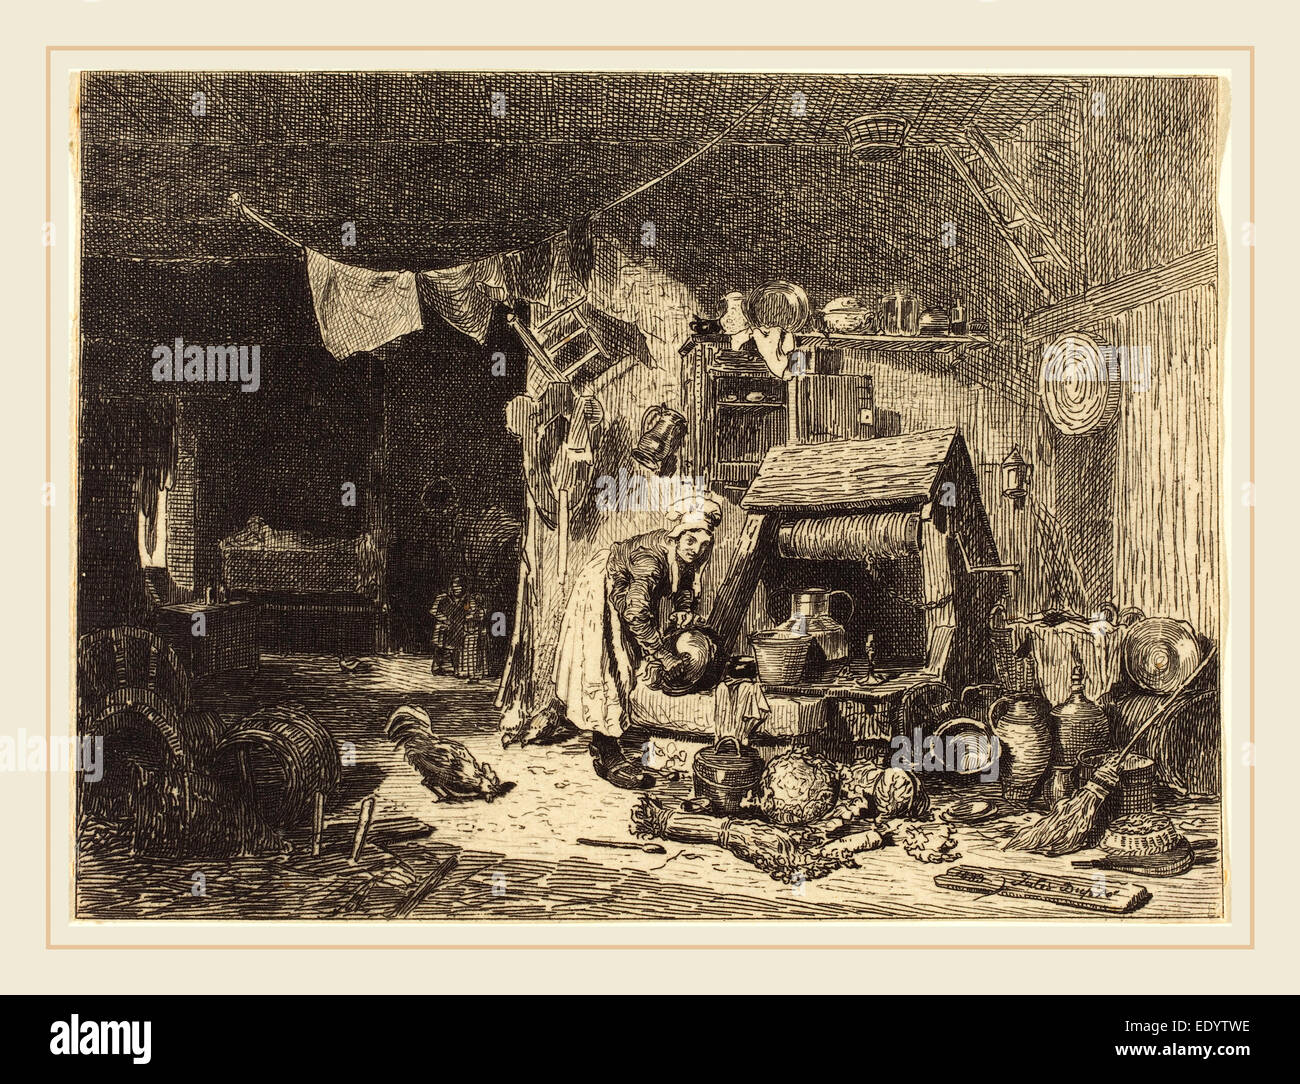 Jules Dupré, French (1811-1889), Interior of a Farmhouse, 1833, etching